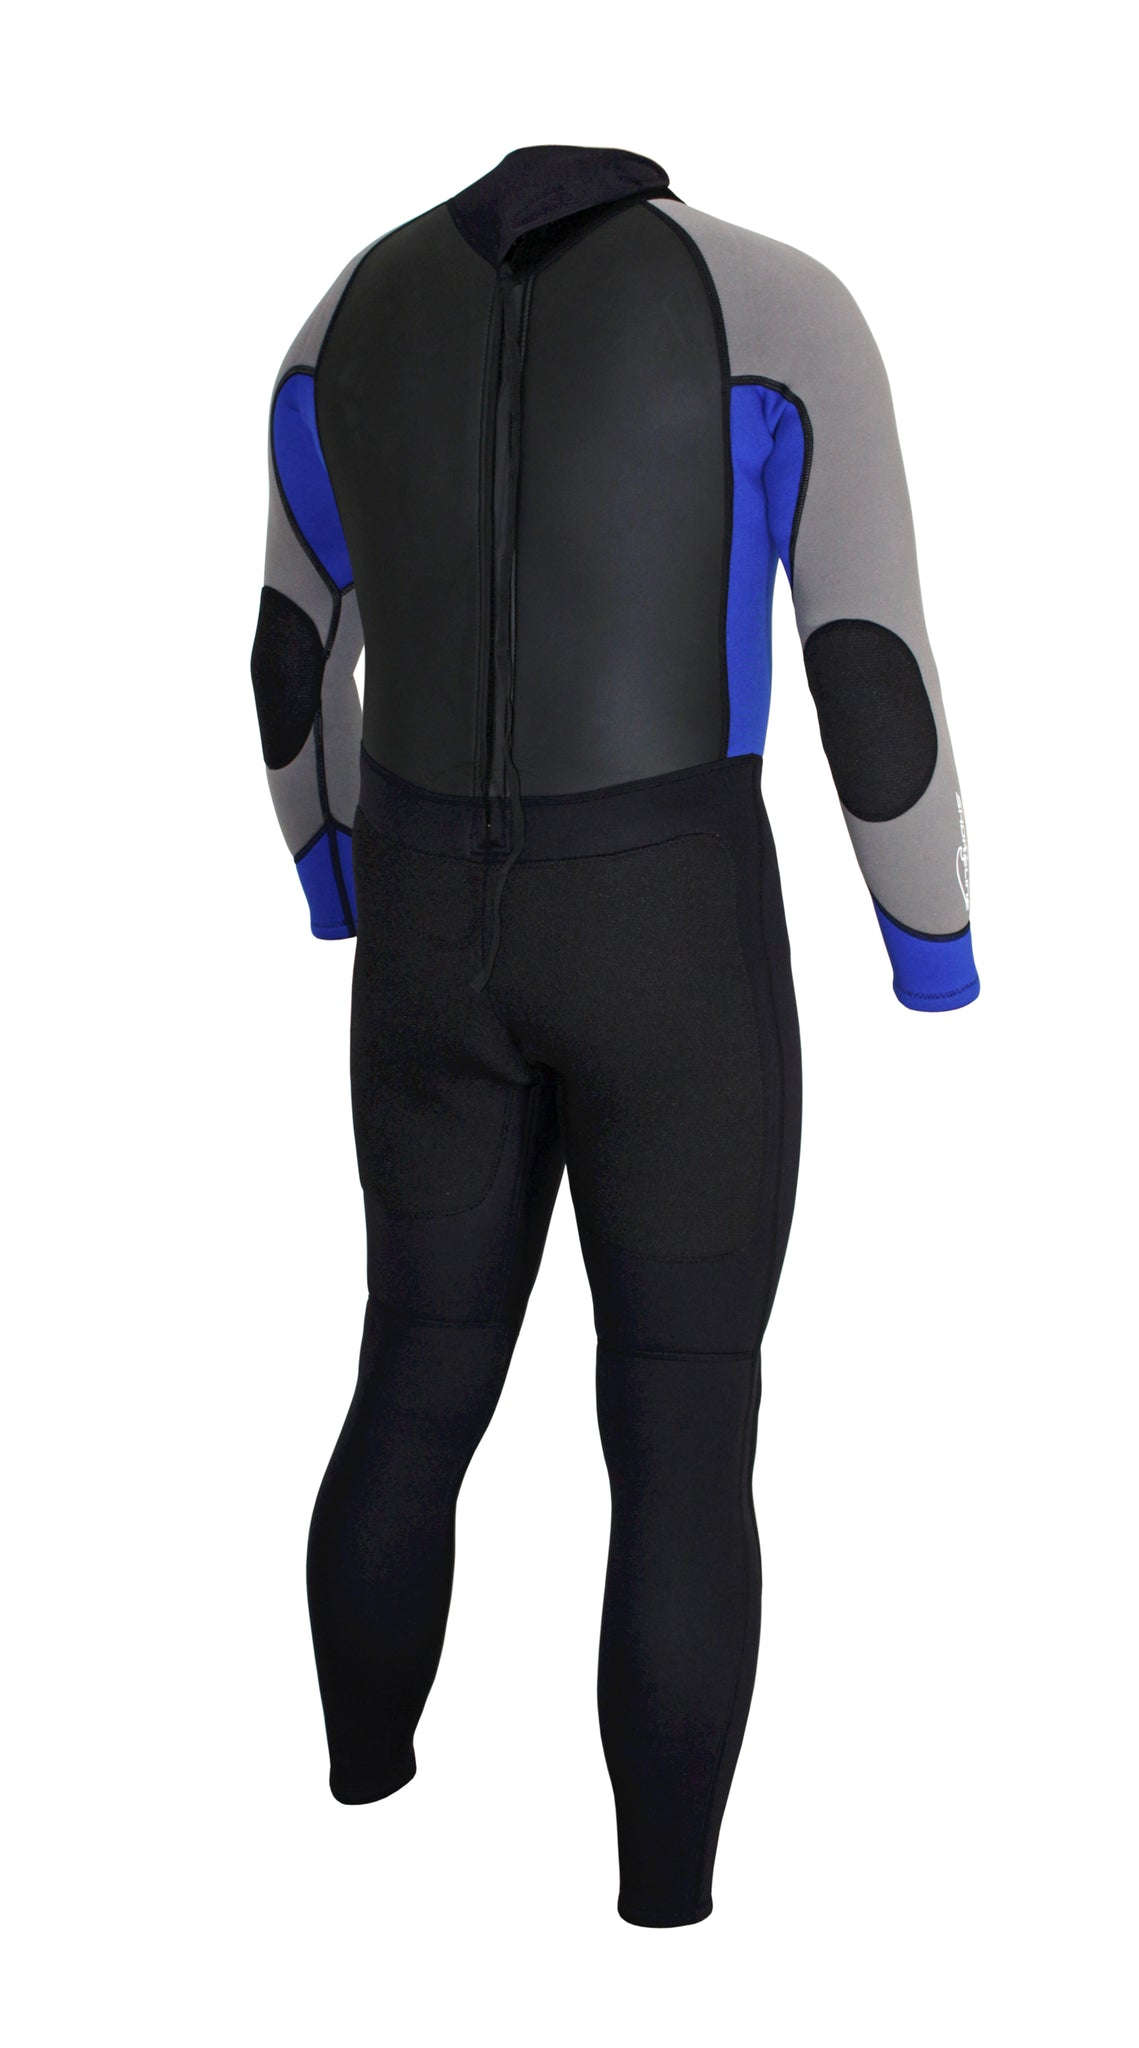 Aspire-V2 HD 3mm wetsuit